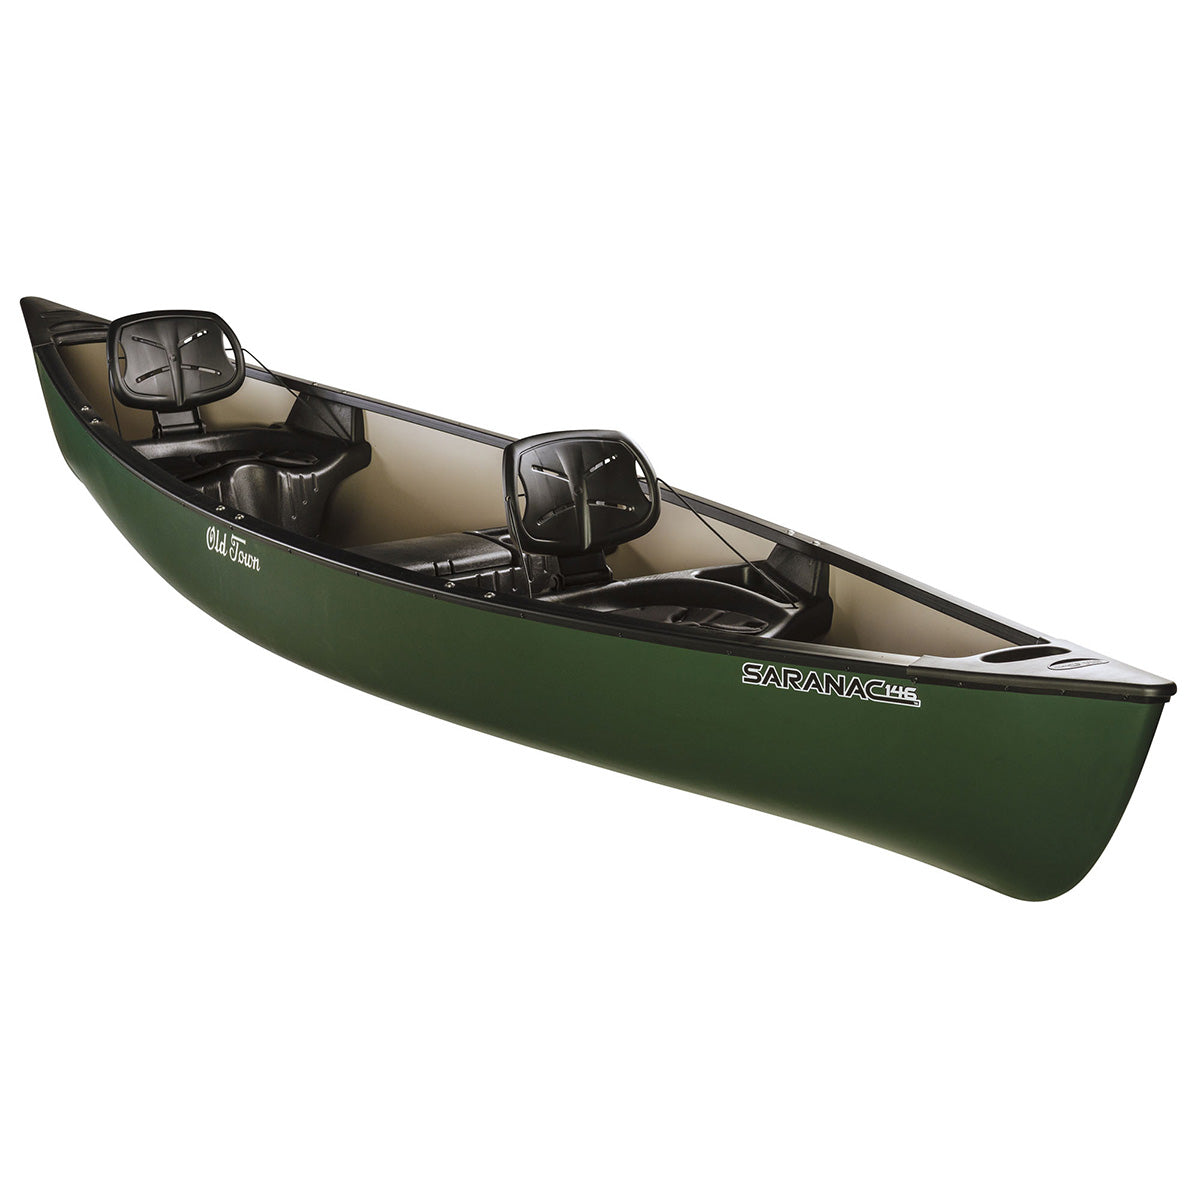 Old Town Saranac 146XT Canoe with 2 free paddles